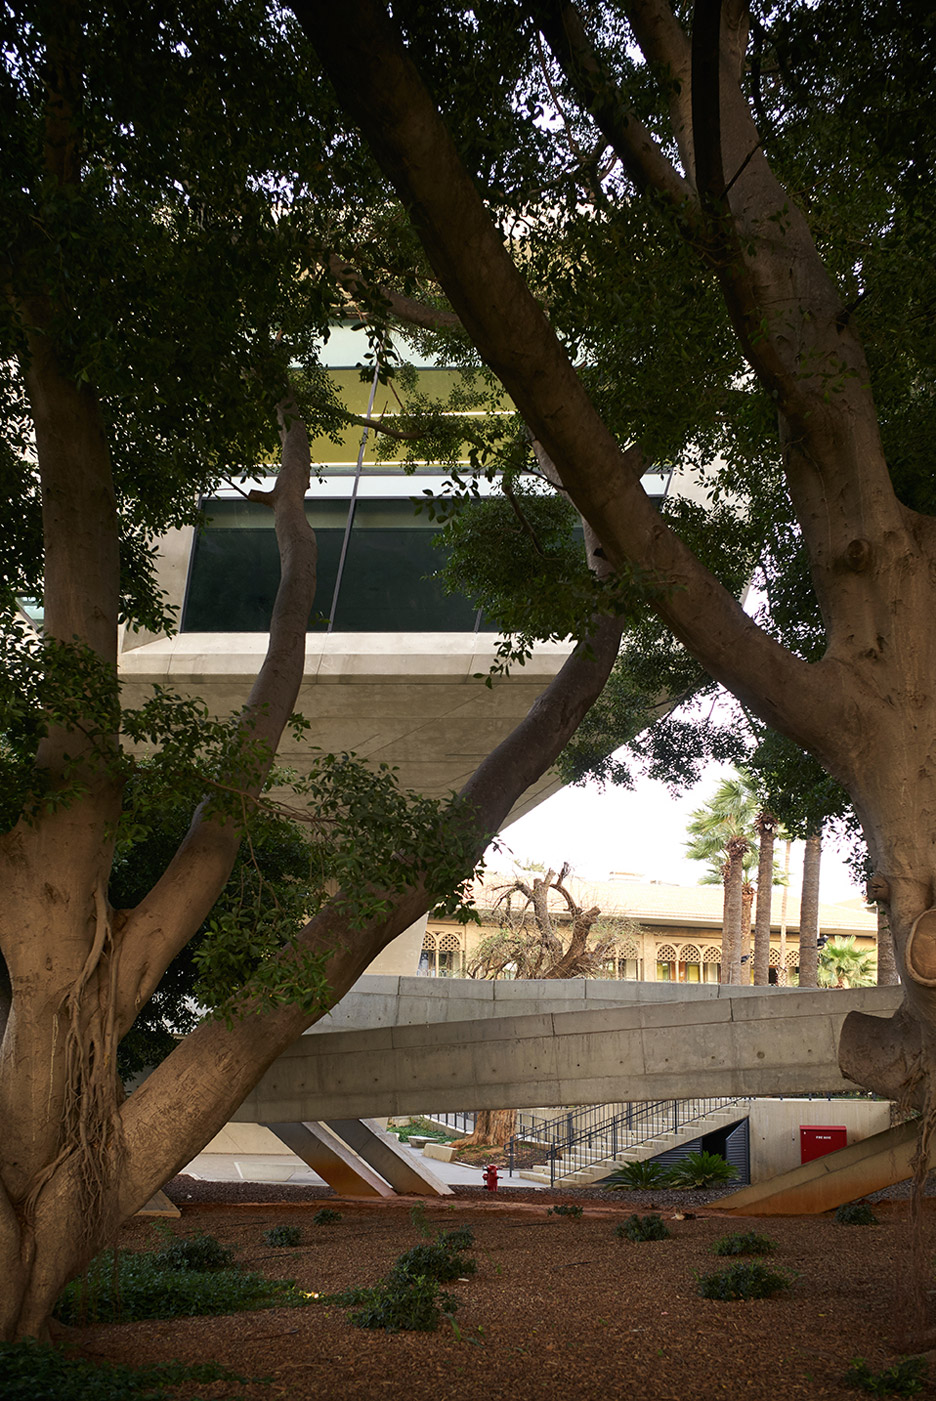 issam-fares-institute-zaha-hadid-julien-lanoo-architecture-photography_dezeen_936_9